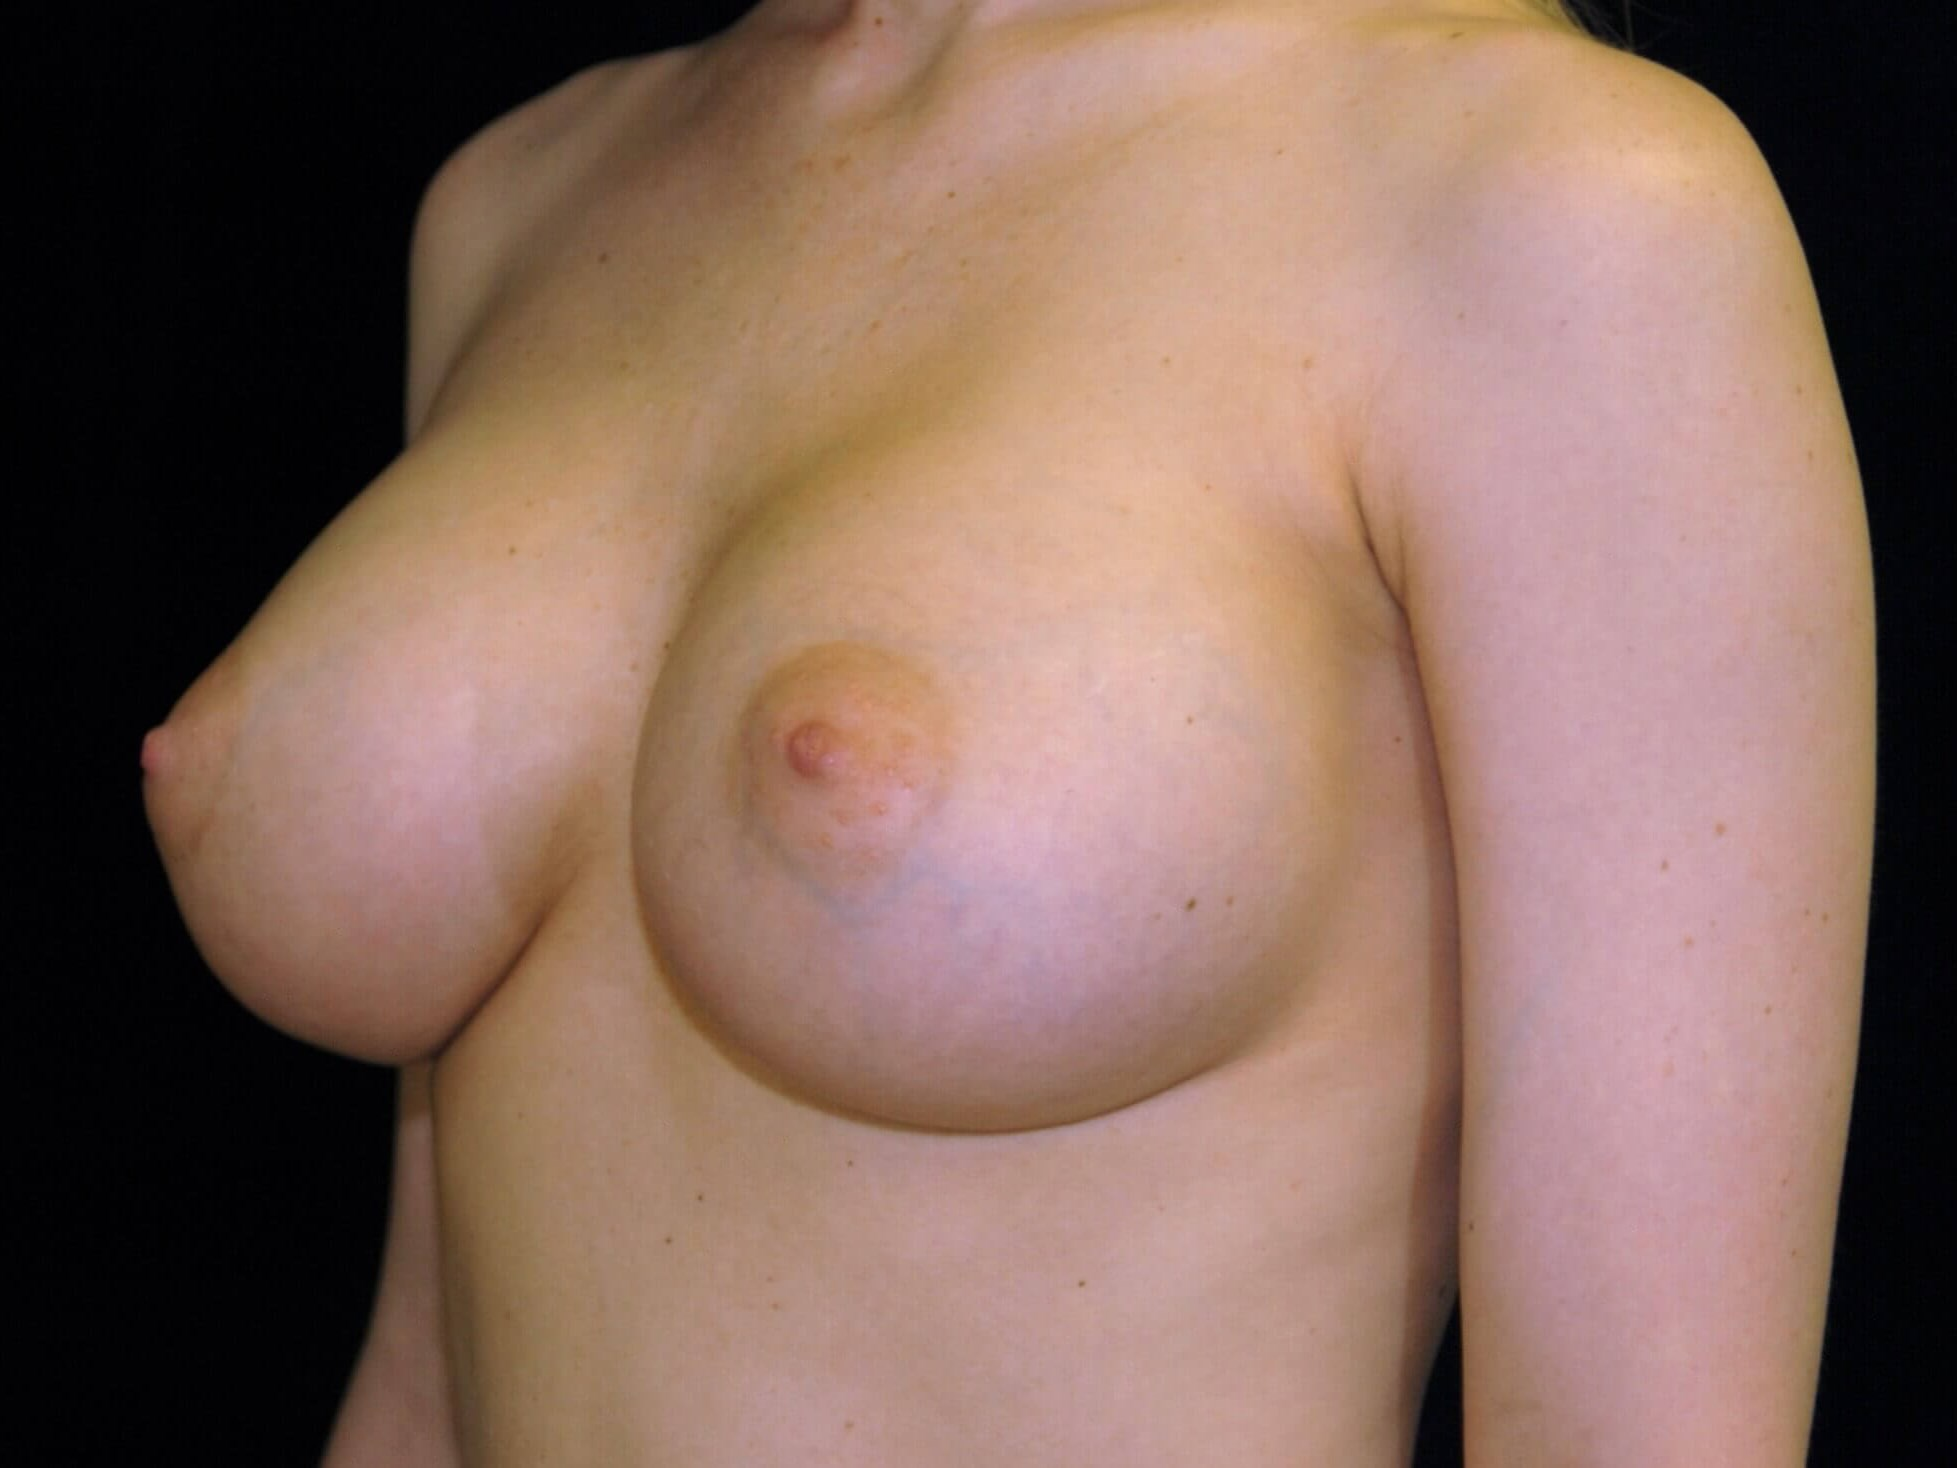 DALLAS, TEXAS WOMAN HAS BREAST AUGMENTATION WITH SILICONE GEL BREAST IMPLANTS.